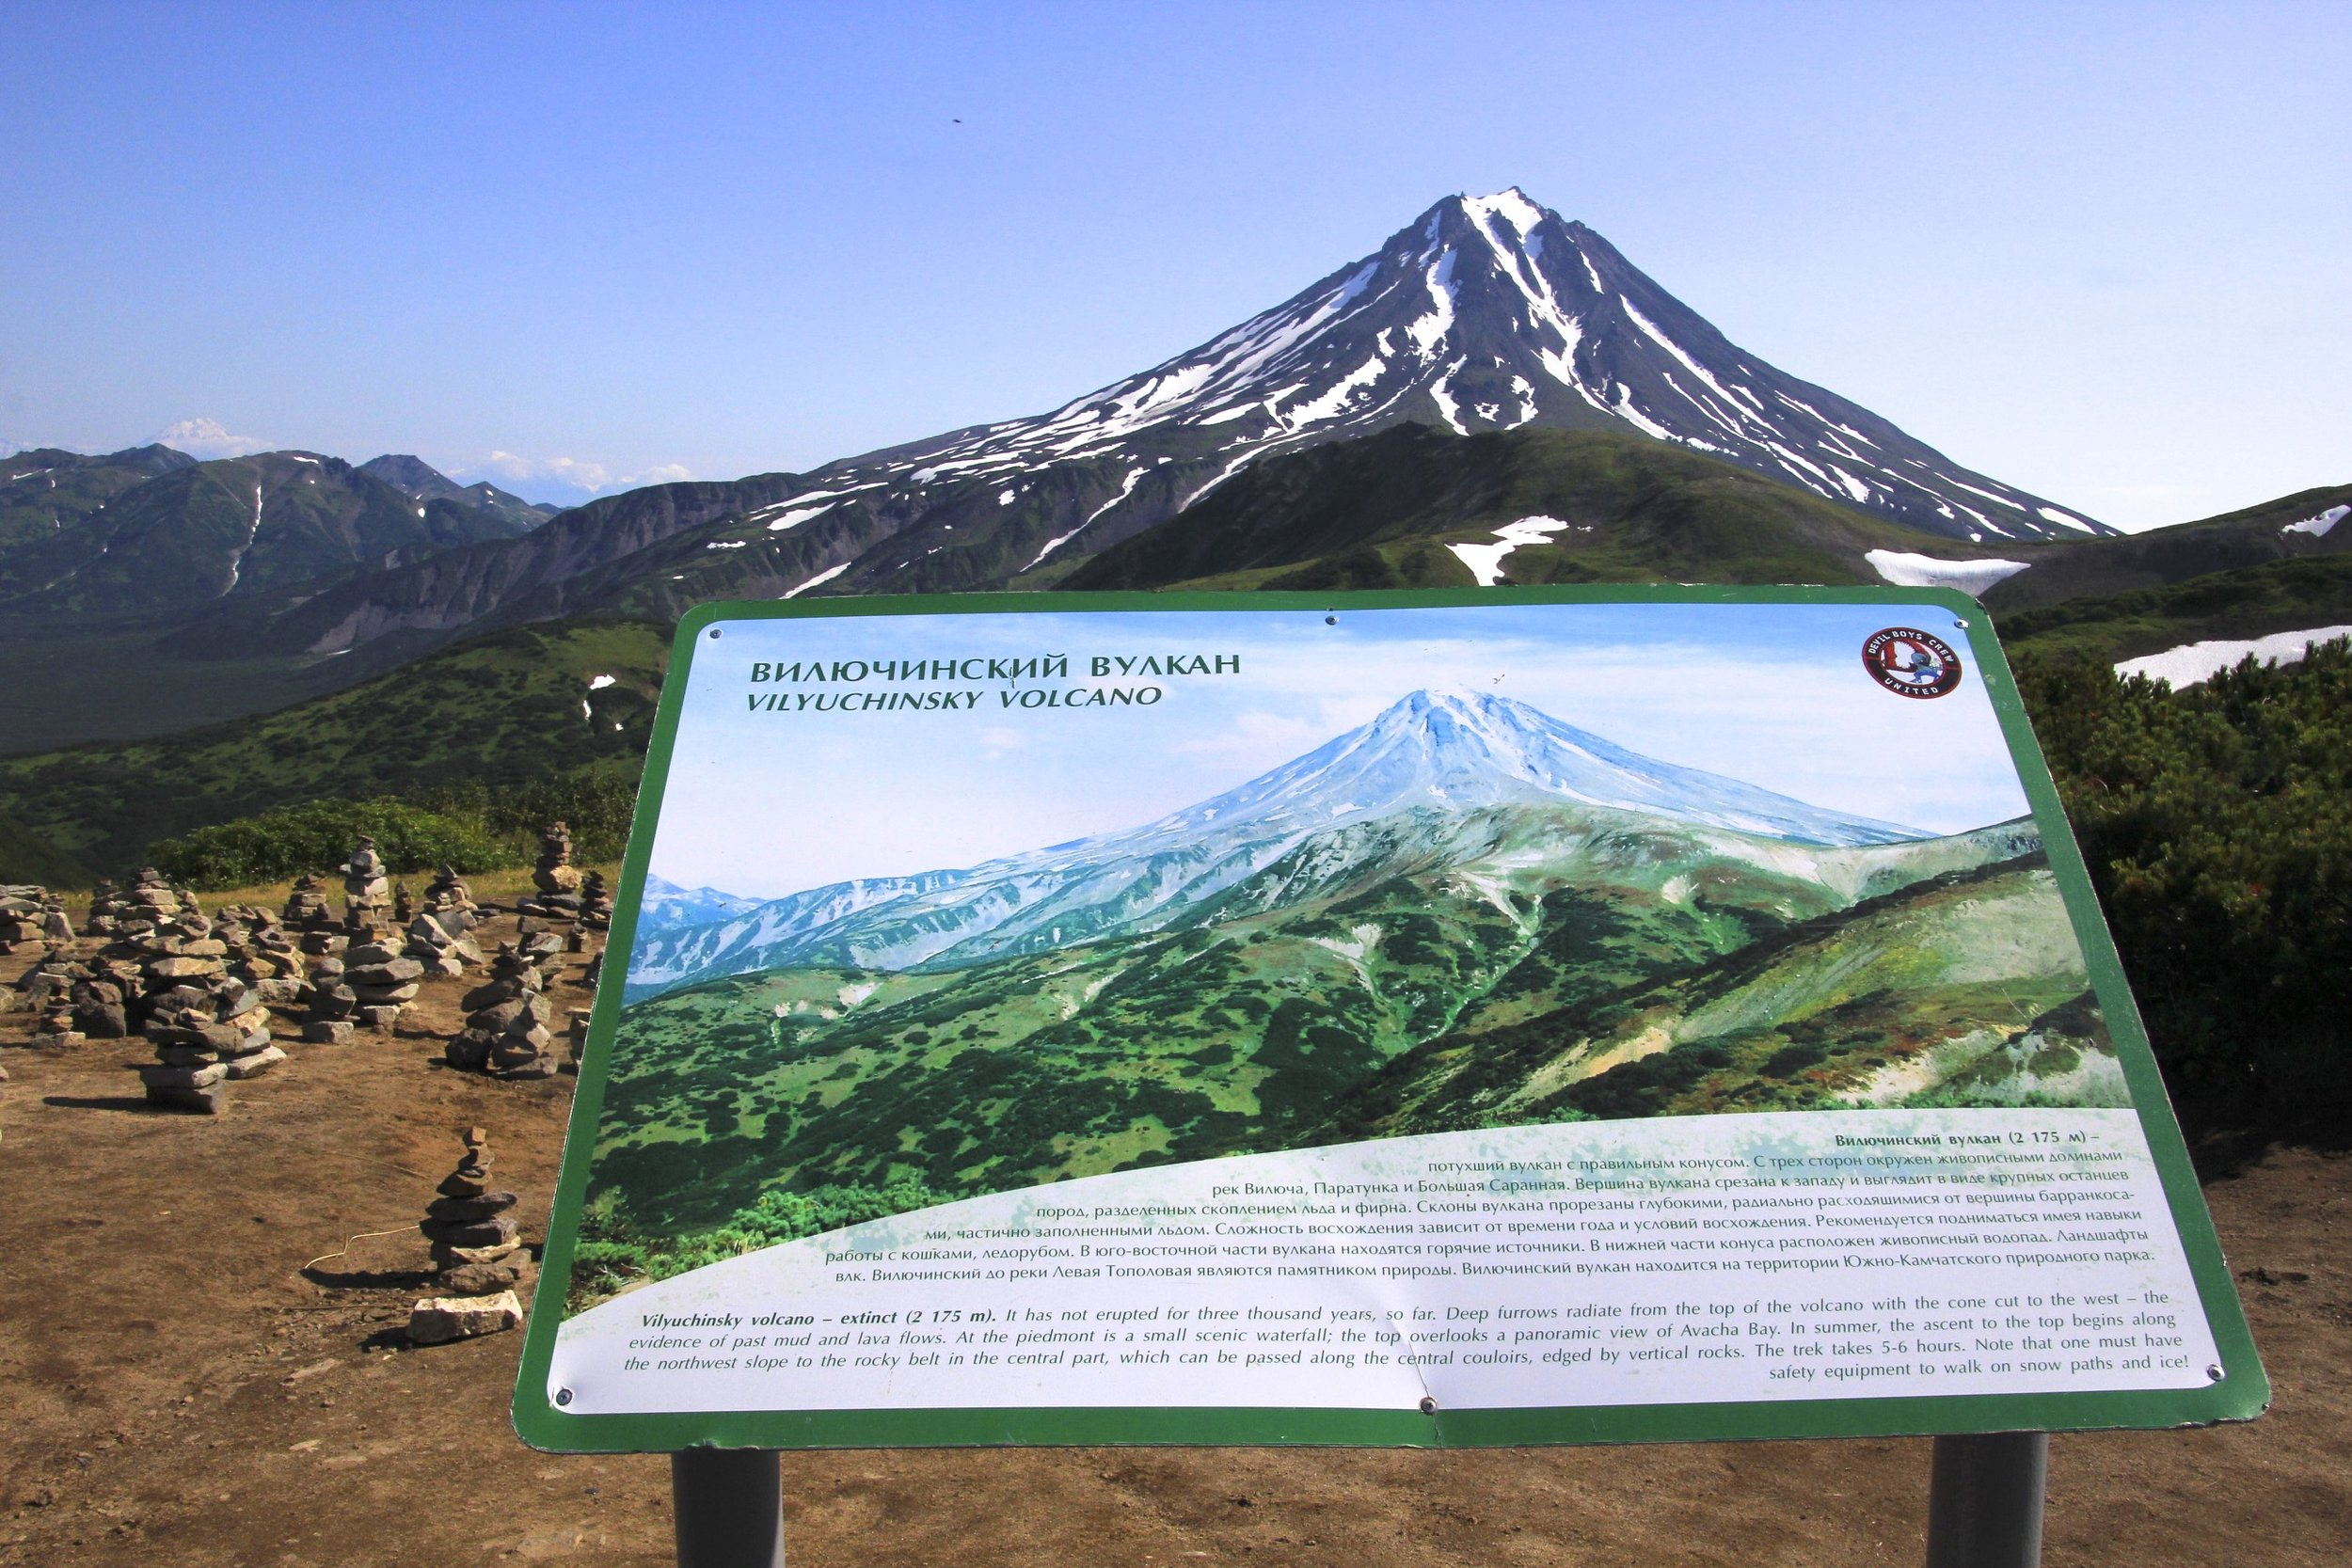 The viewpoint for the Vilyuchinsky Volcano.